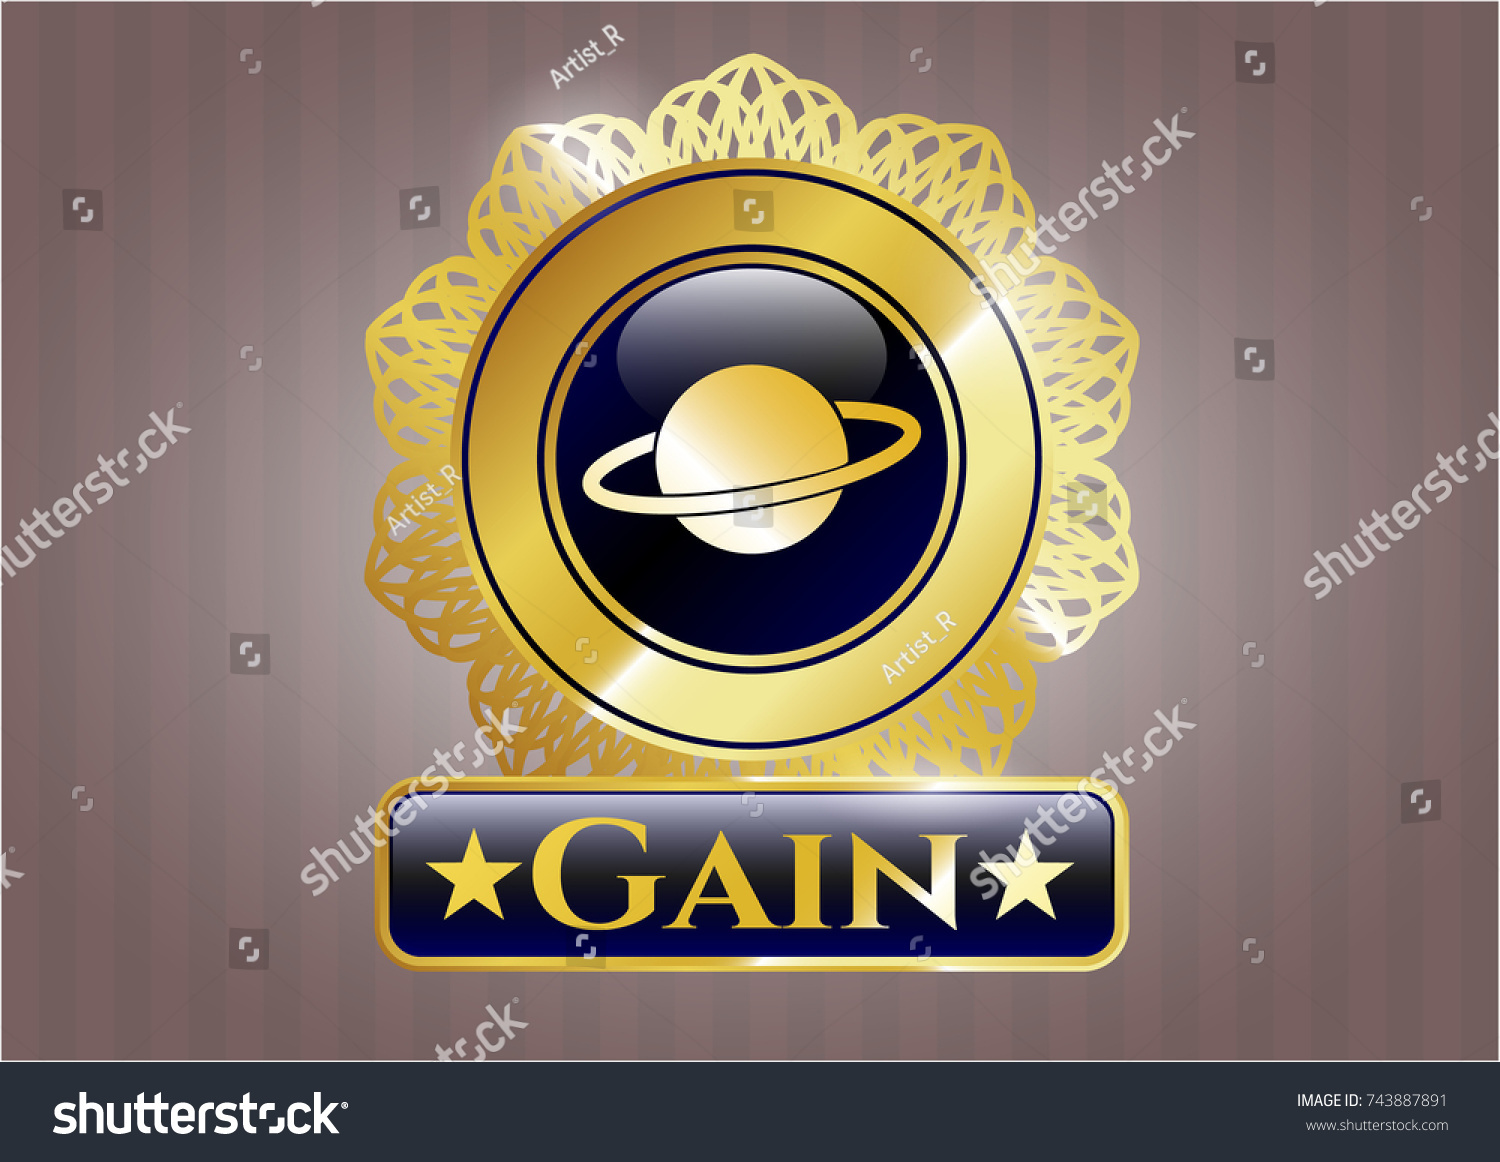 Gold shiny badge planet saturn icon stock vector 743887891 gold shiny badge with planet saturn icon and gain text inside buycottarizona Image collections